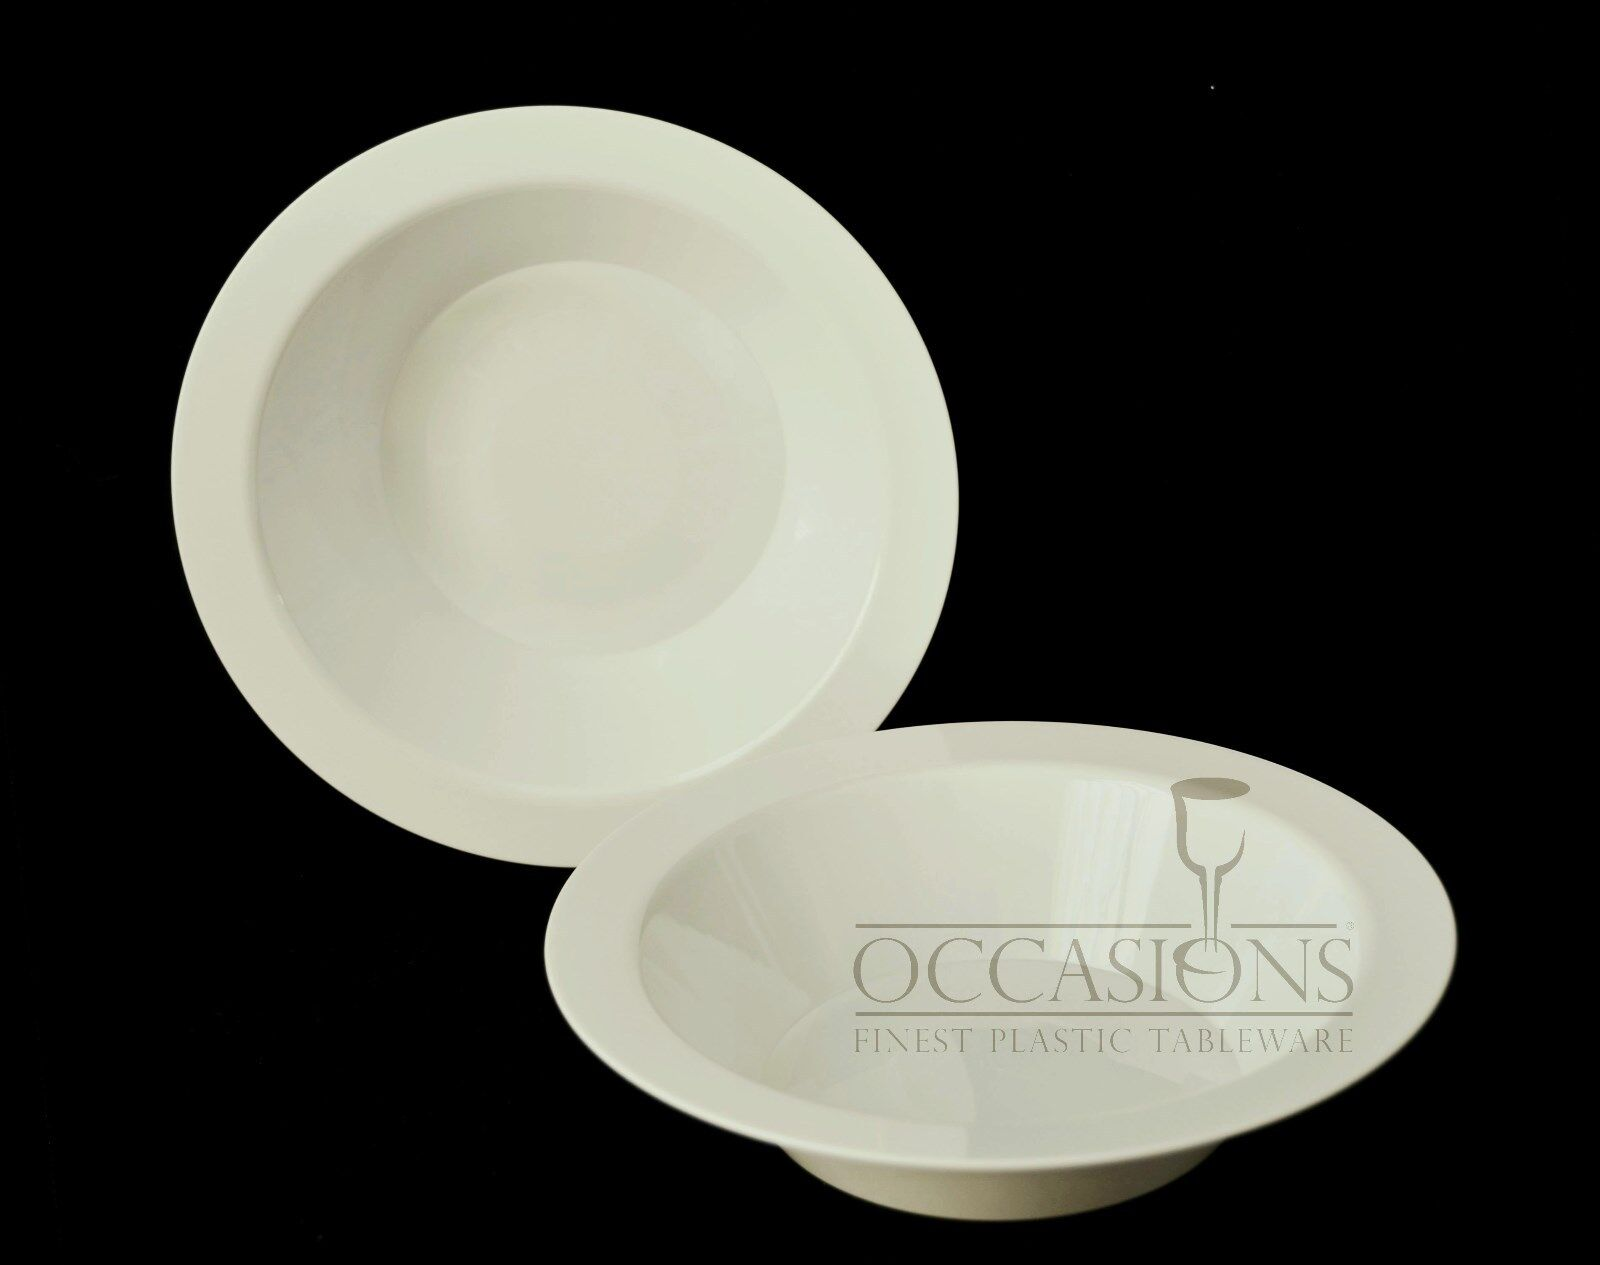 Wedding Party Disposable Plastic Dinnerware Round & Disposable Dinnerware For Weddings - Castrophotos